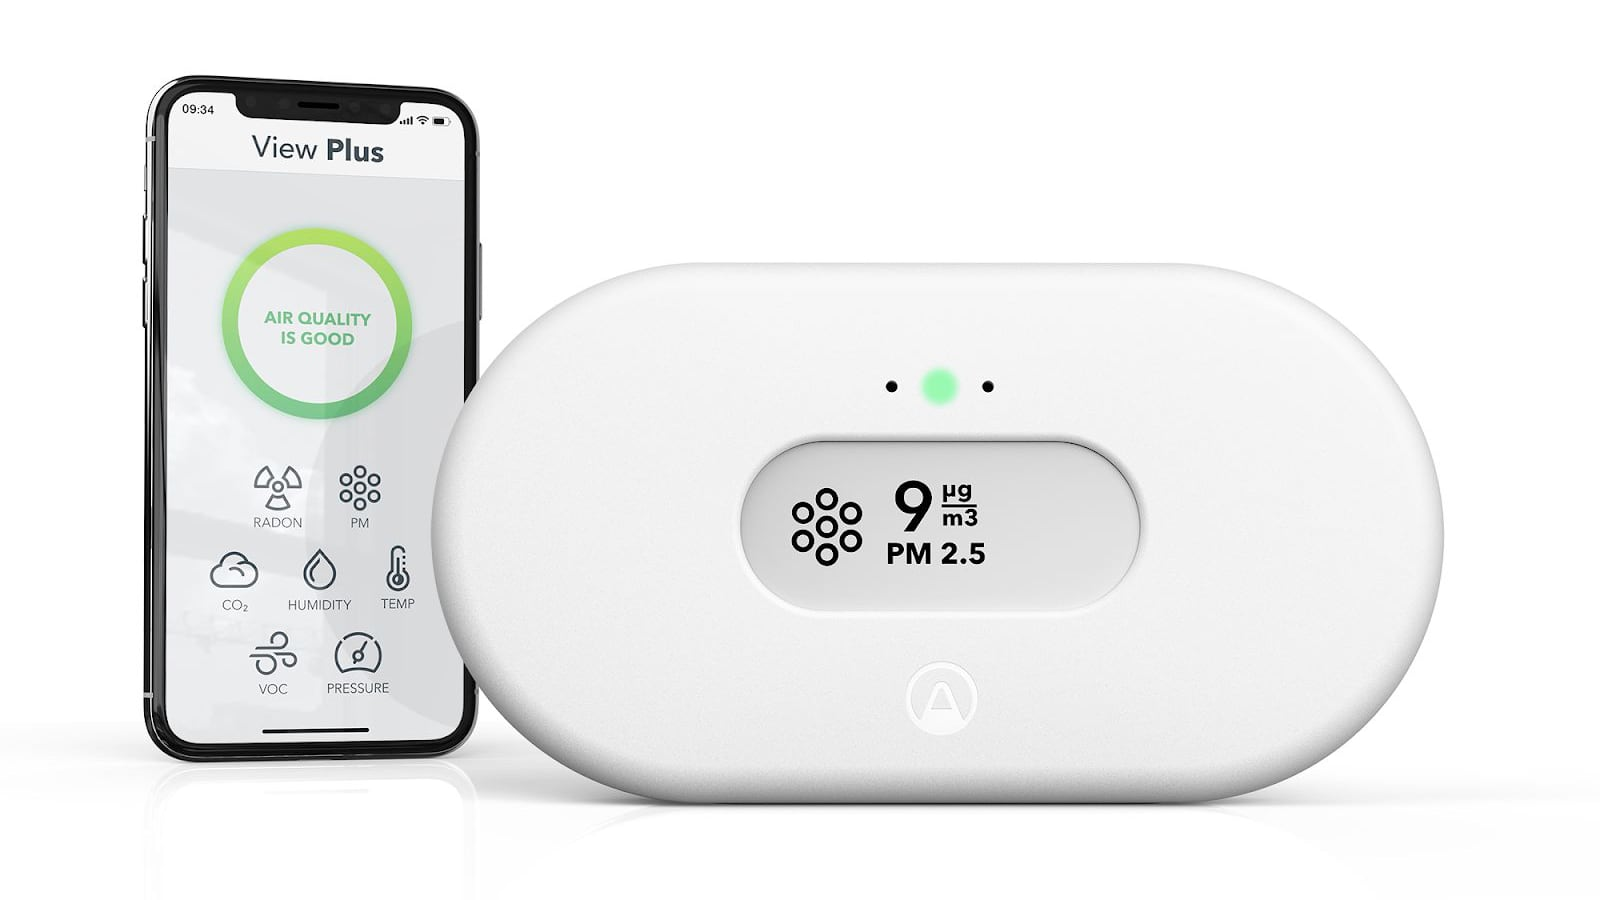 The New Airthings View Plus